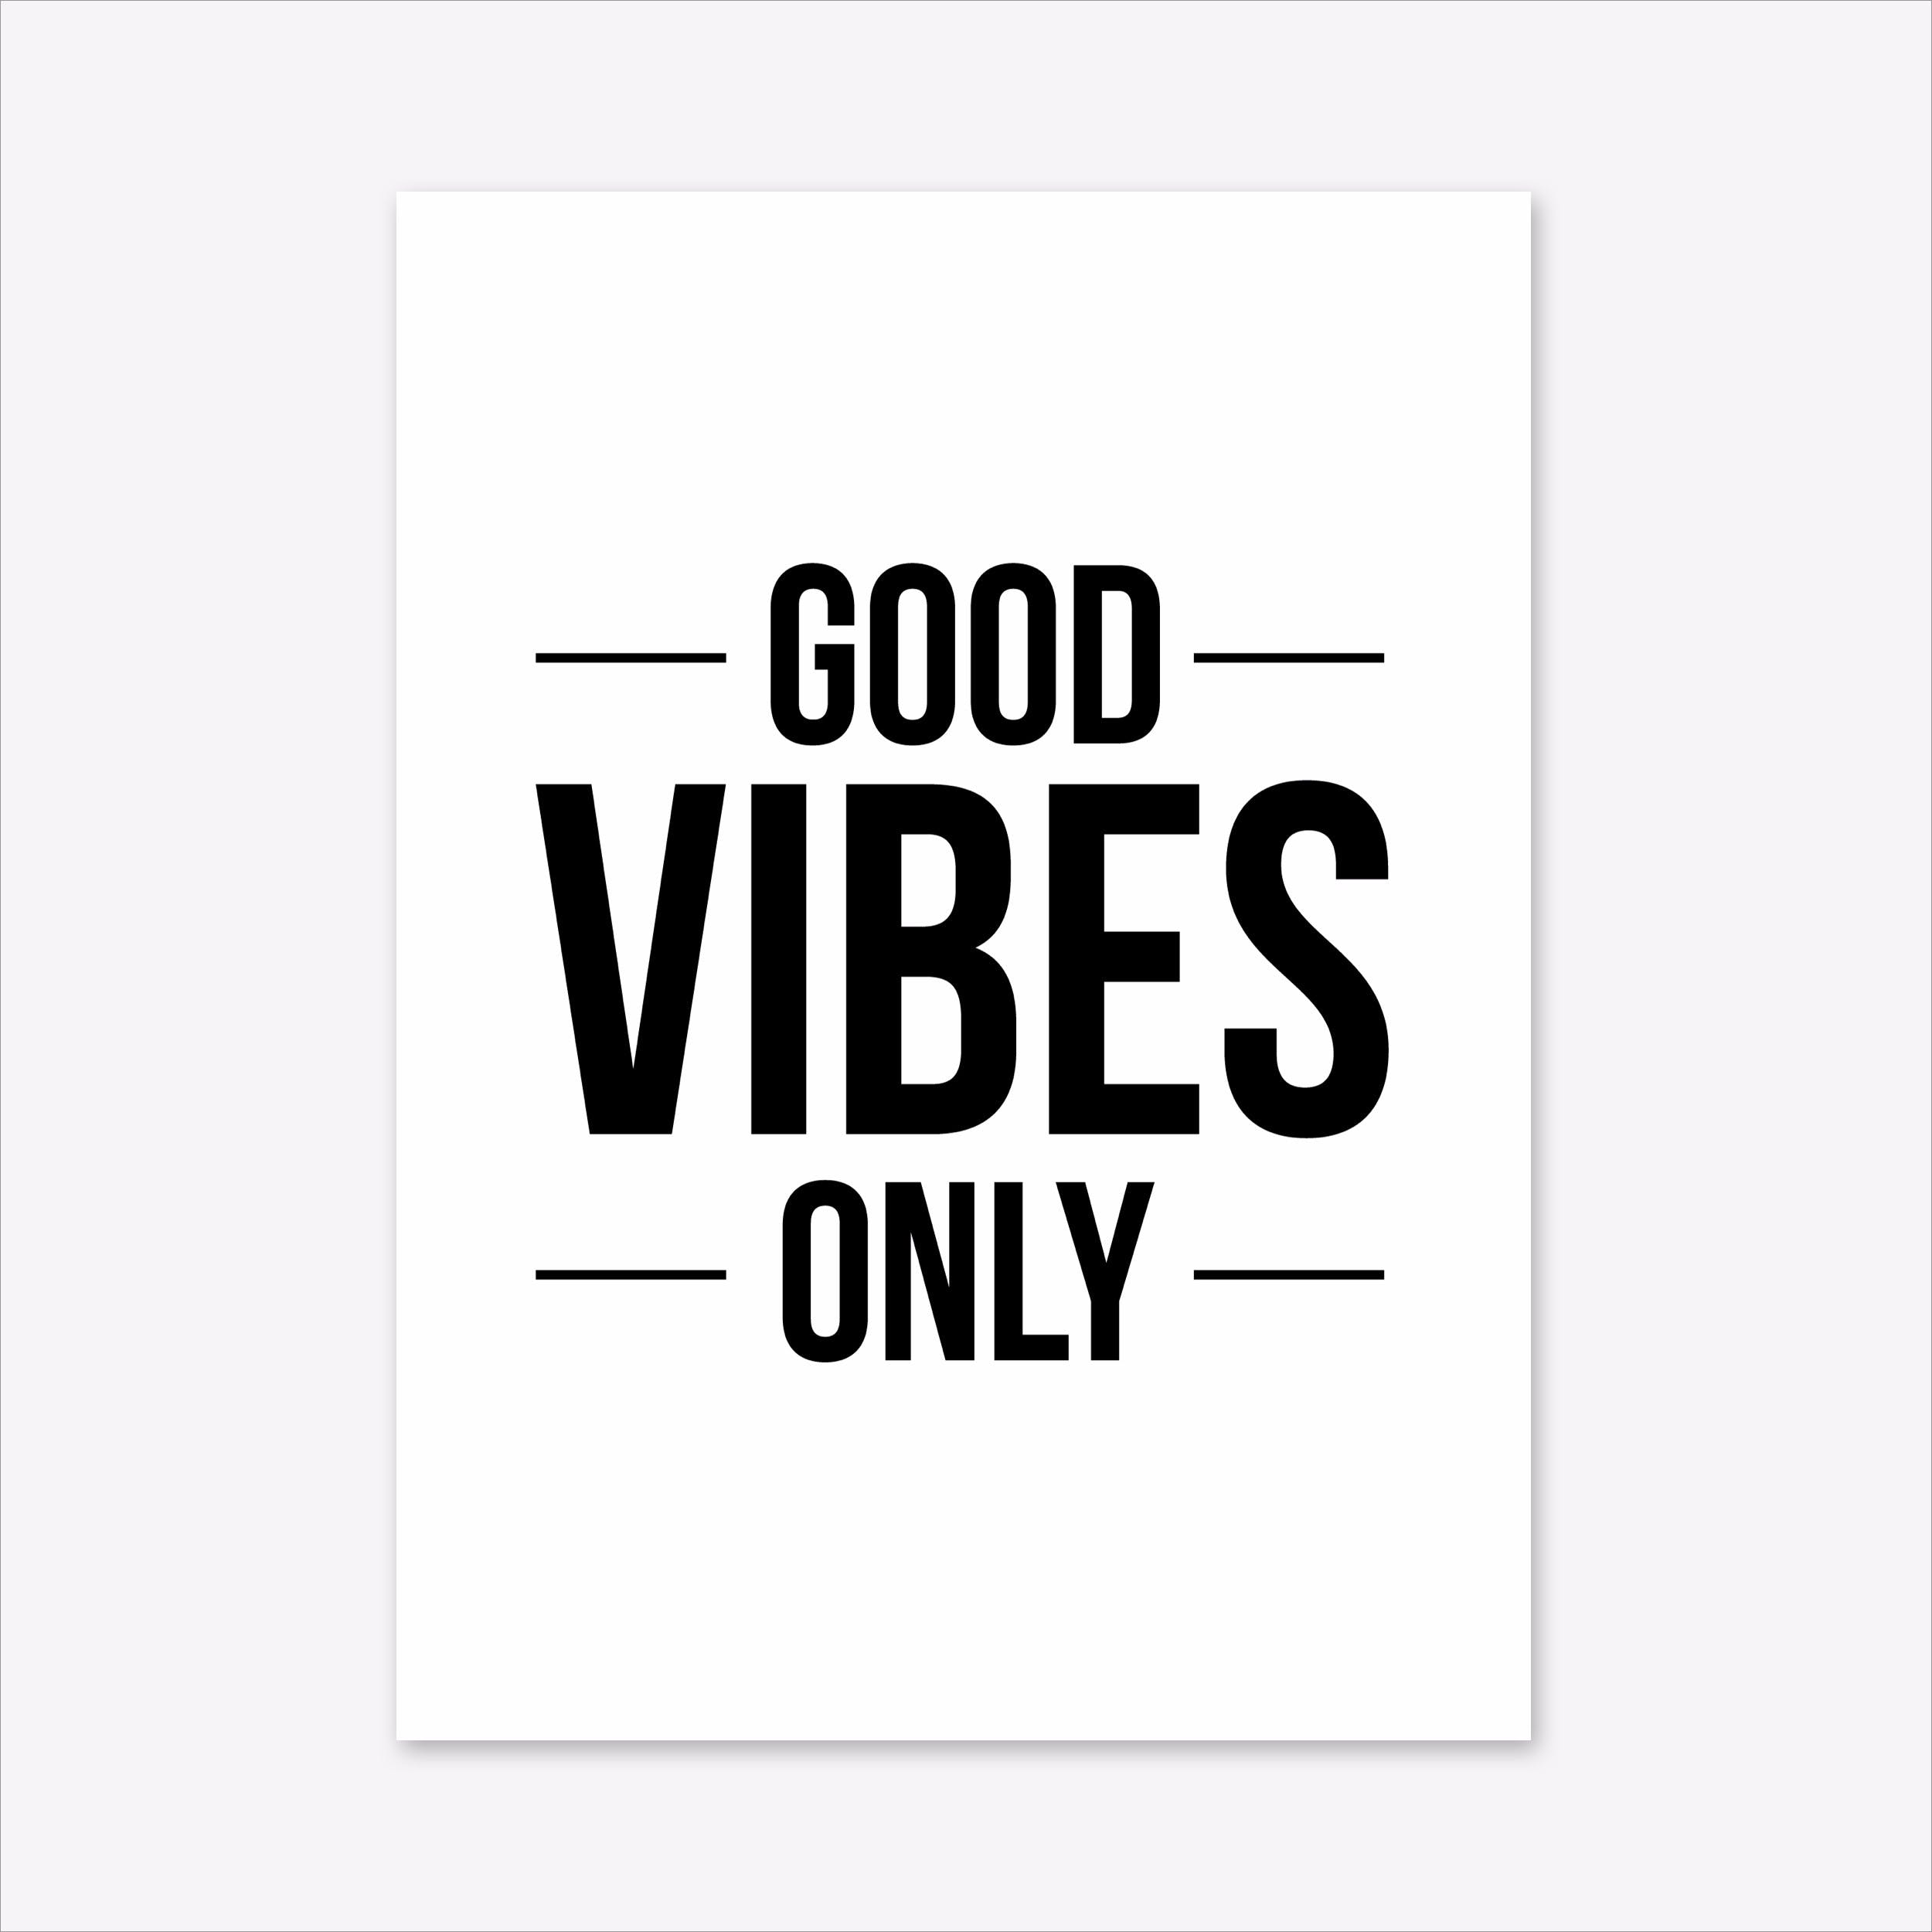 Good Vibes Only A3 Print